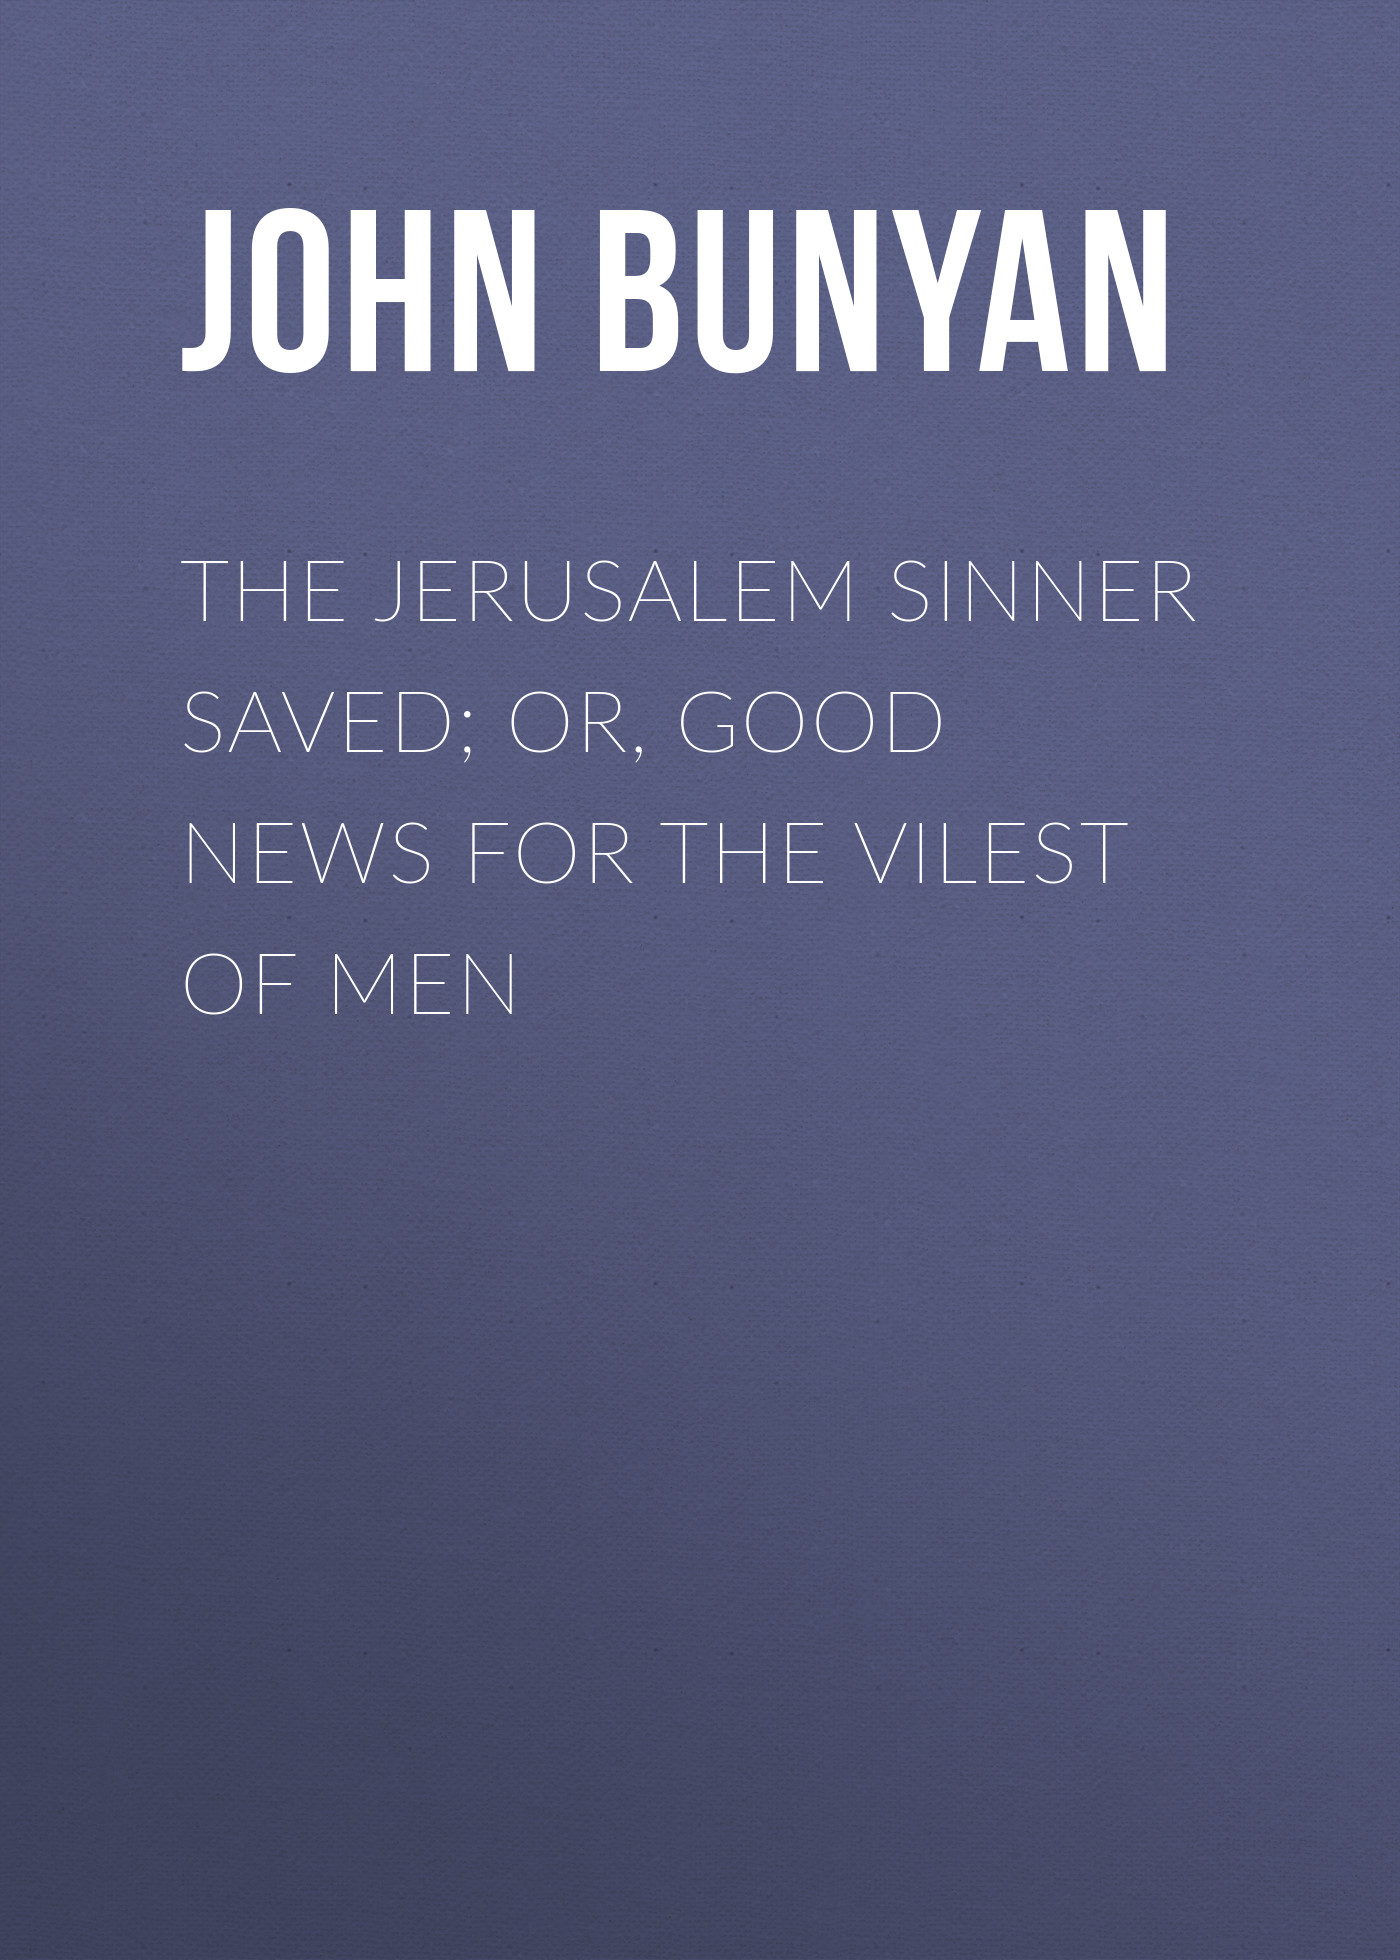 Купить John Bunyan The Jerusalem Sinner Saved; or, Good News for the Vilest of Men в интернет-магазине дешево